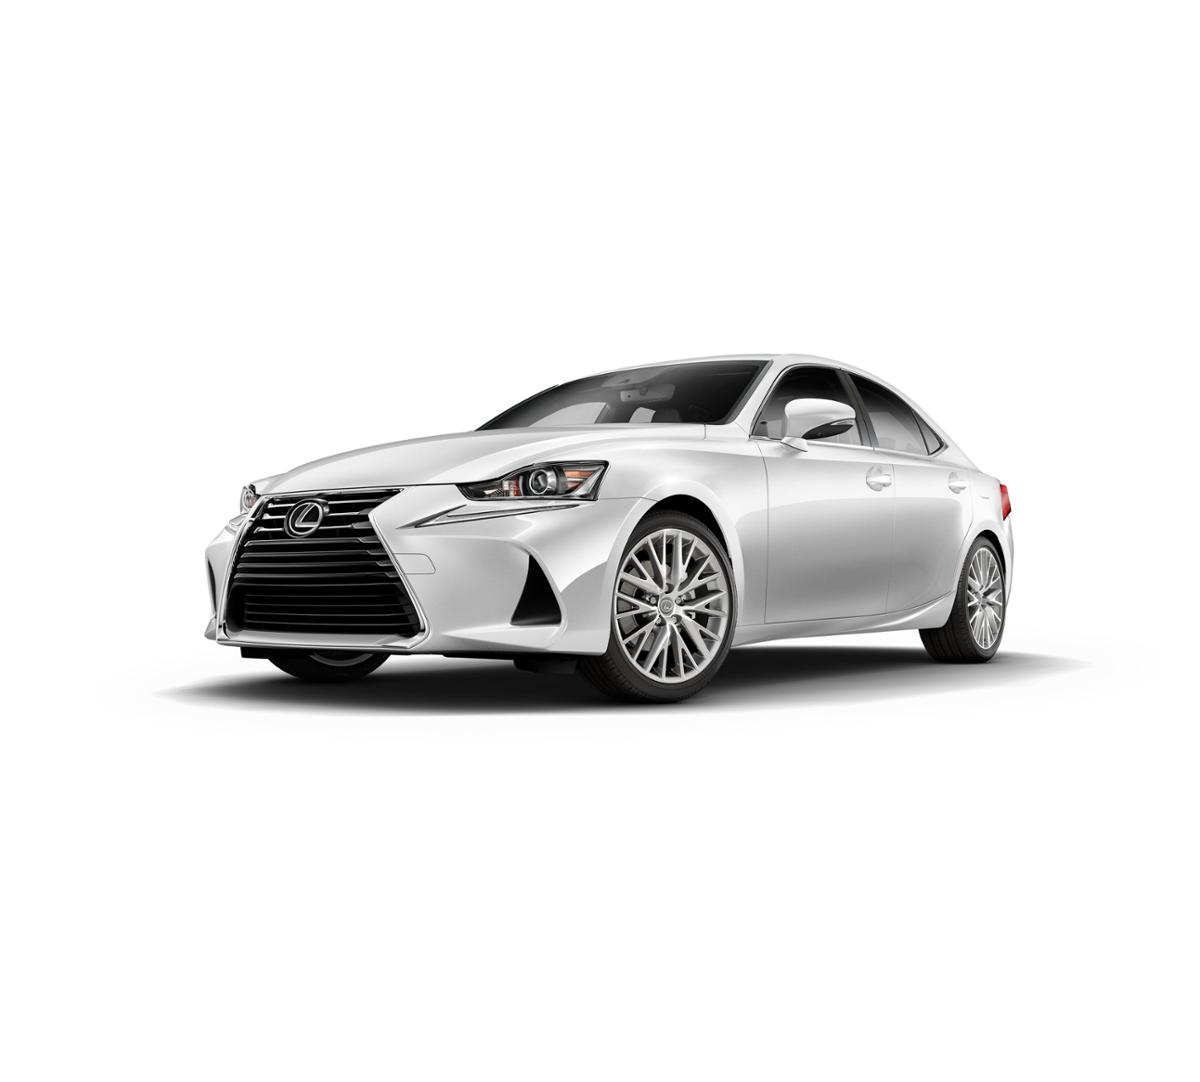 2017 Lexus IS Turbo Vehicle Photo in Houston, TX 77546